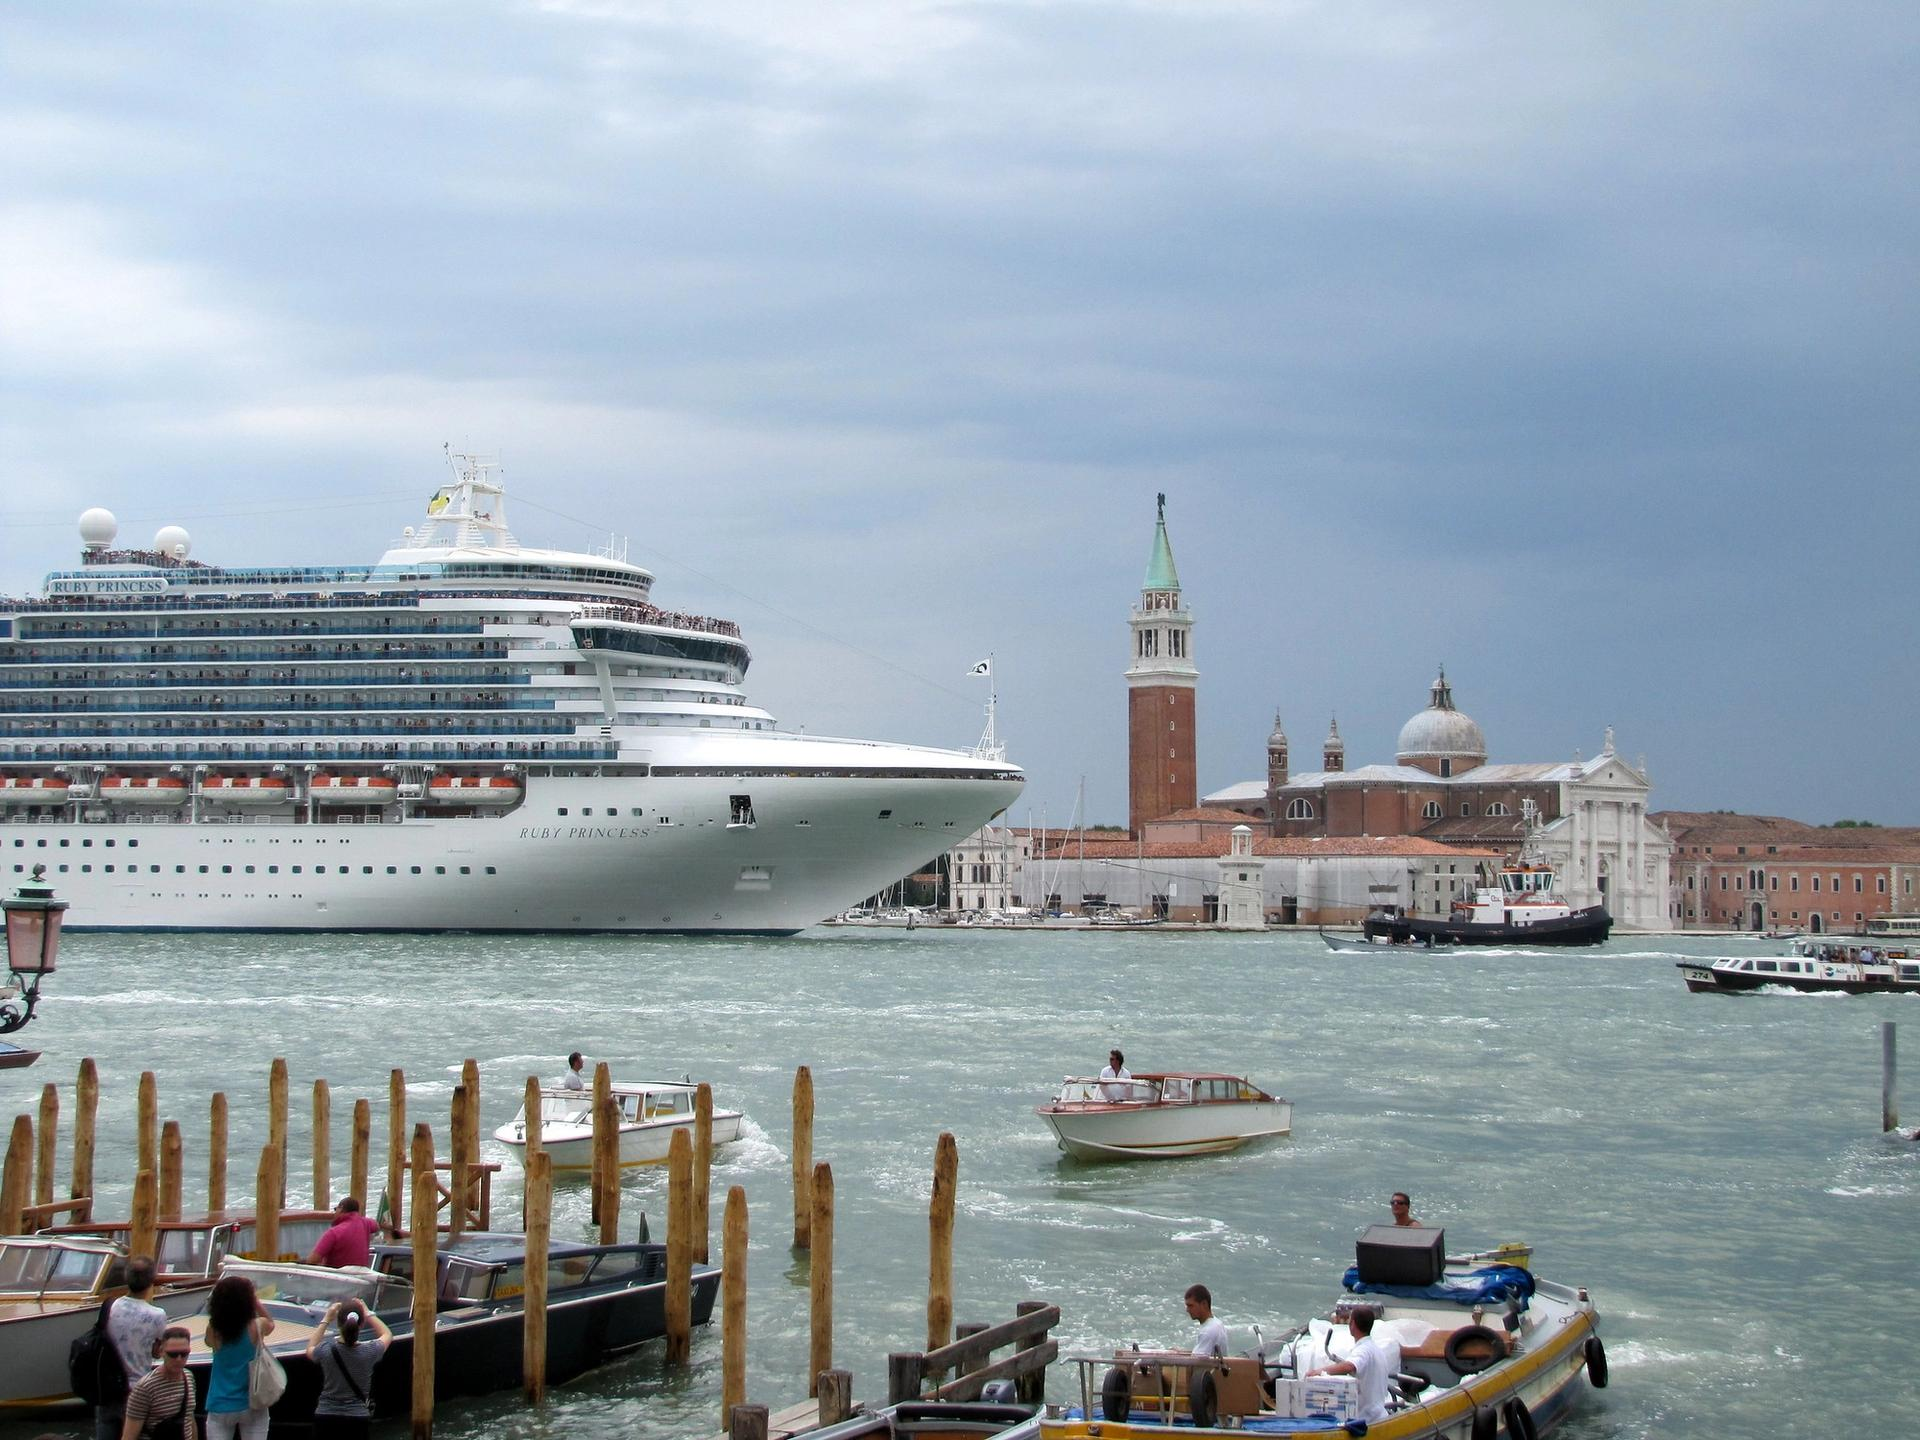 Cruise ships were banned in Venetian ports this month © Flickr / Dan Davidson